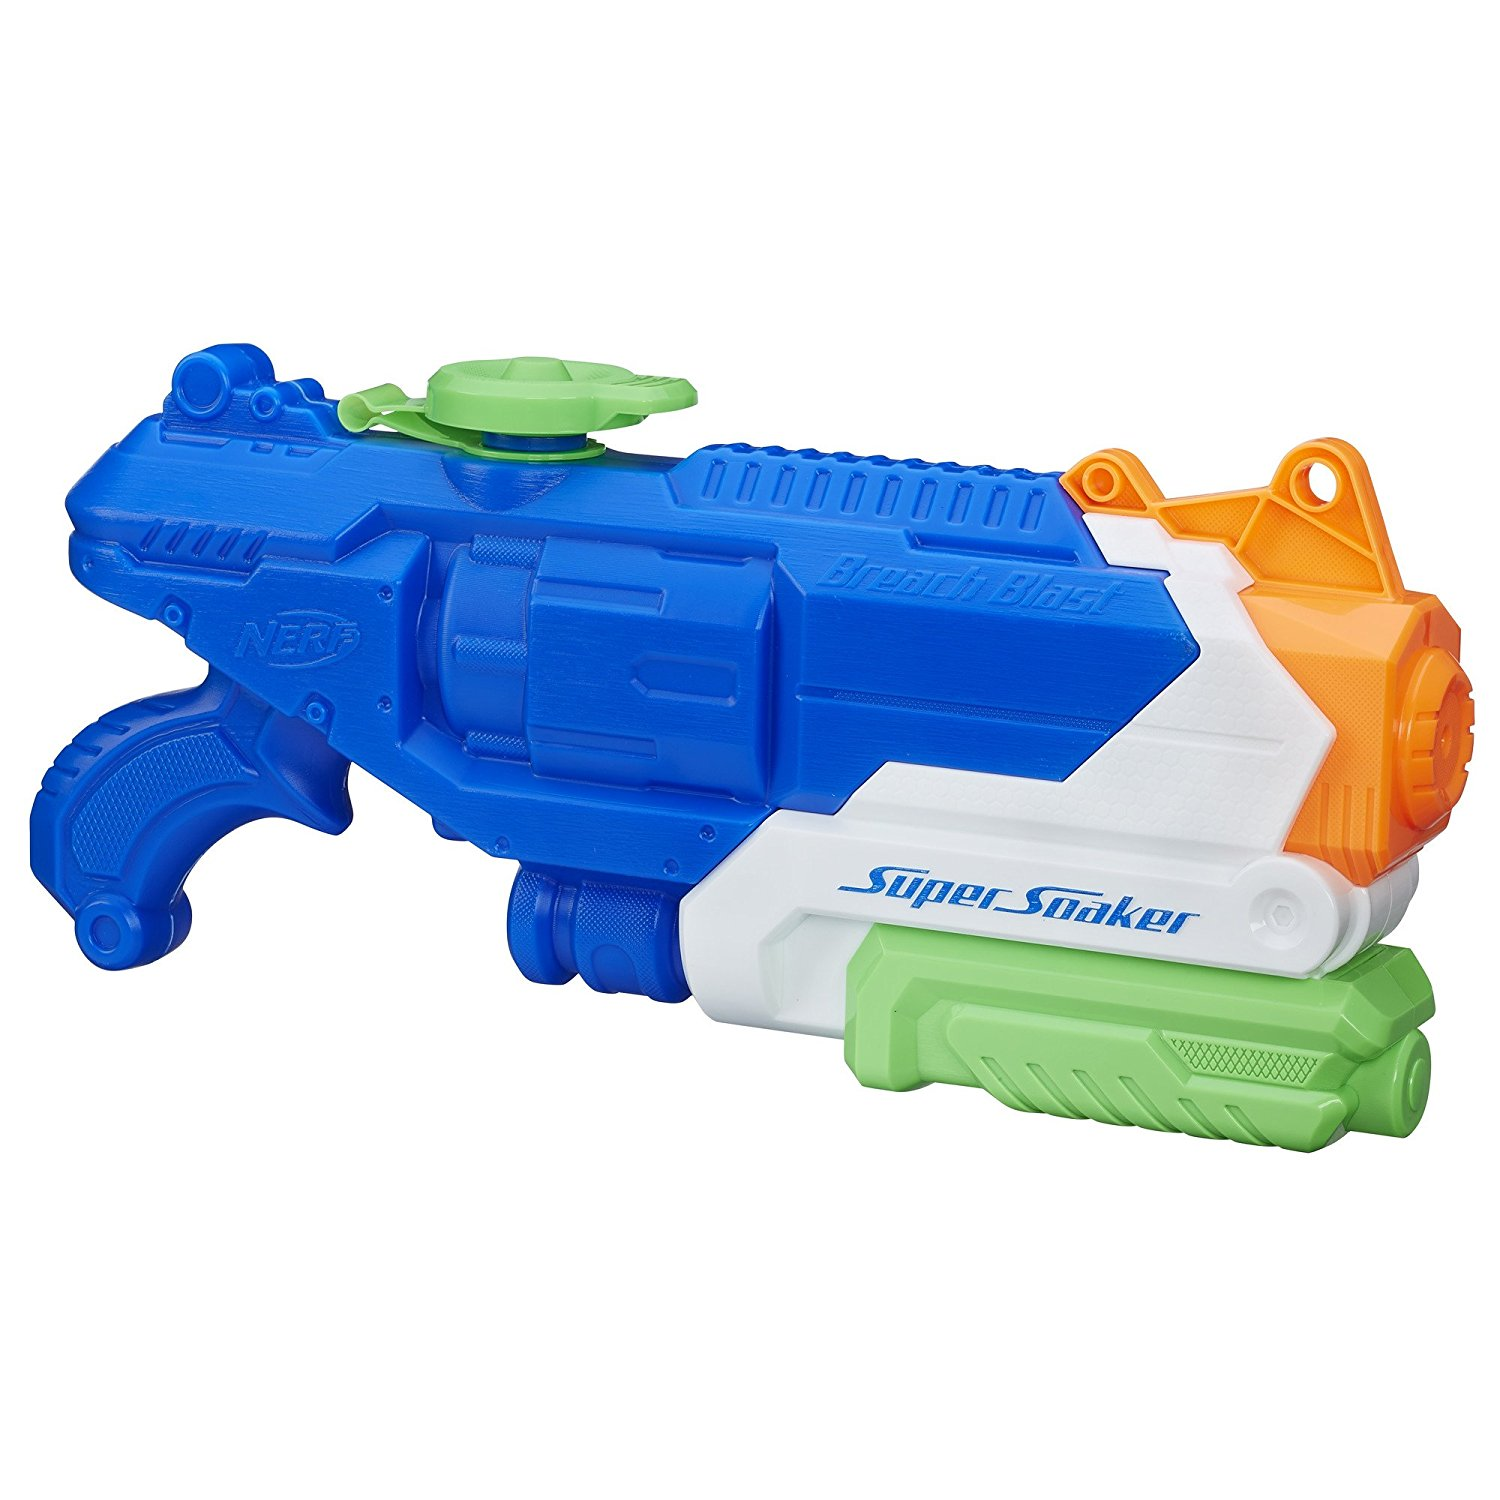 Nerf Super Soaker A9461 Microburst 2 Blaster, 1 Pack By SUPERSOAKER